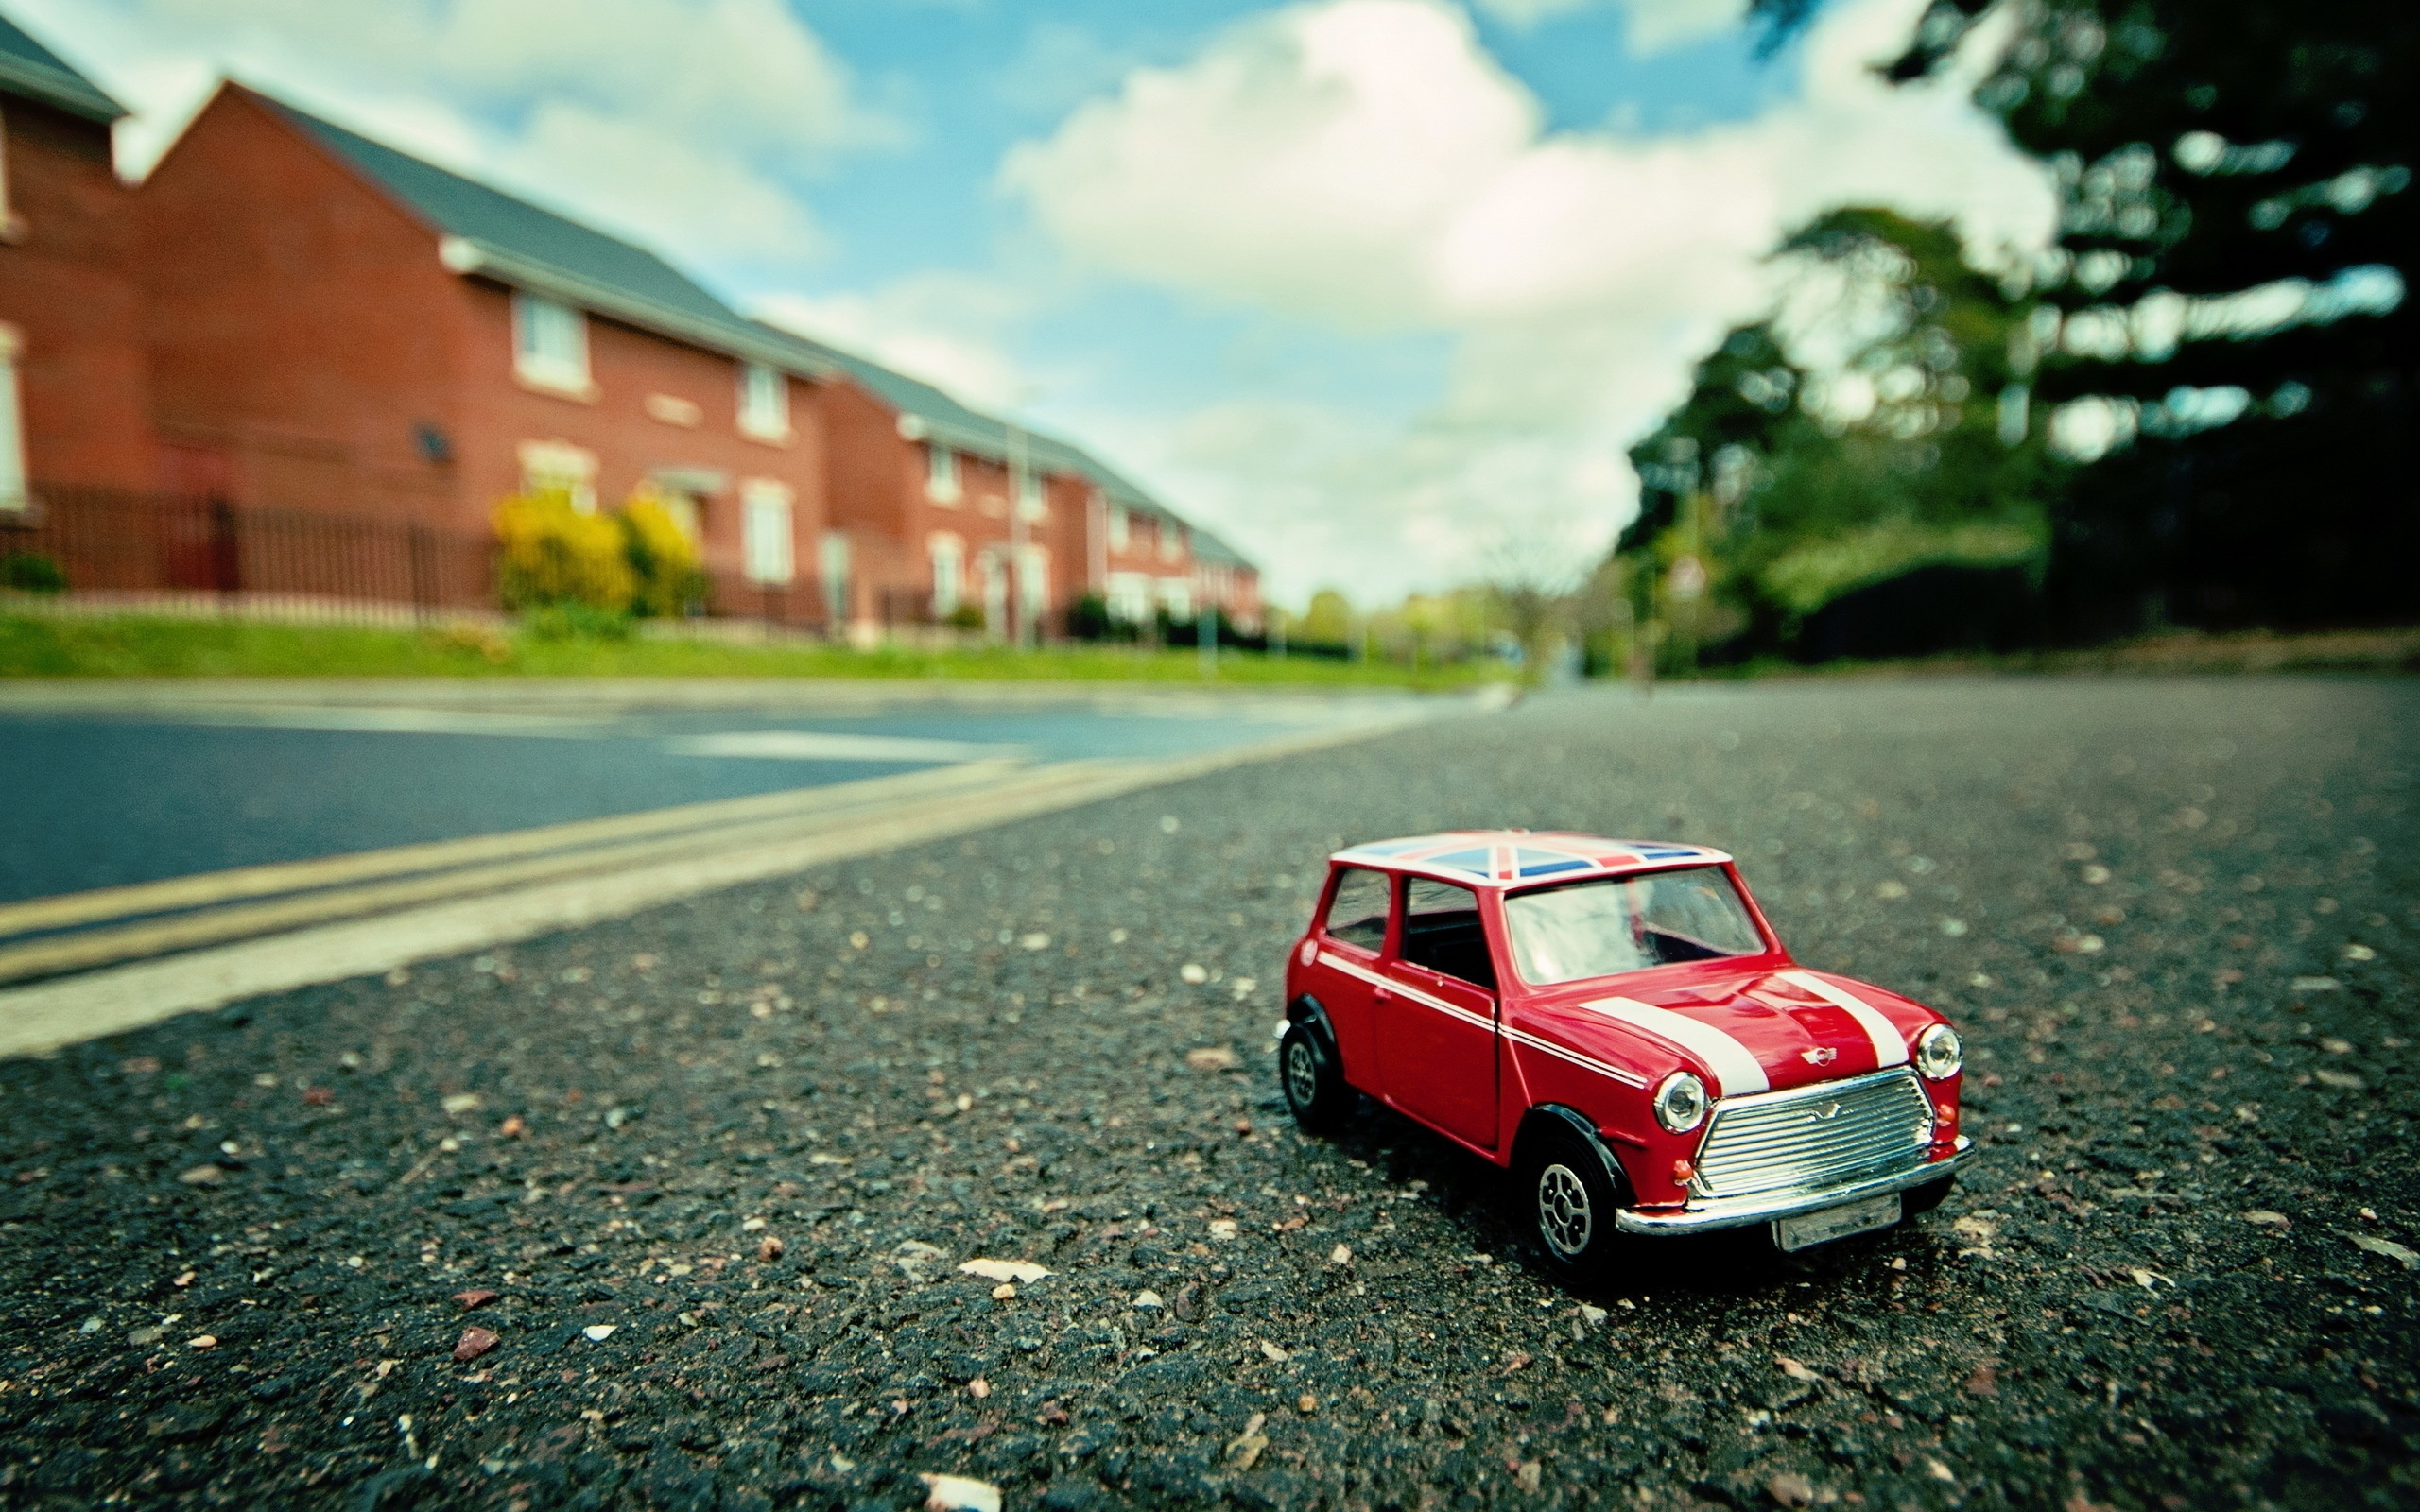 Toy Car Background